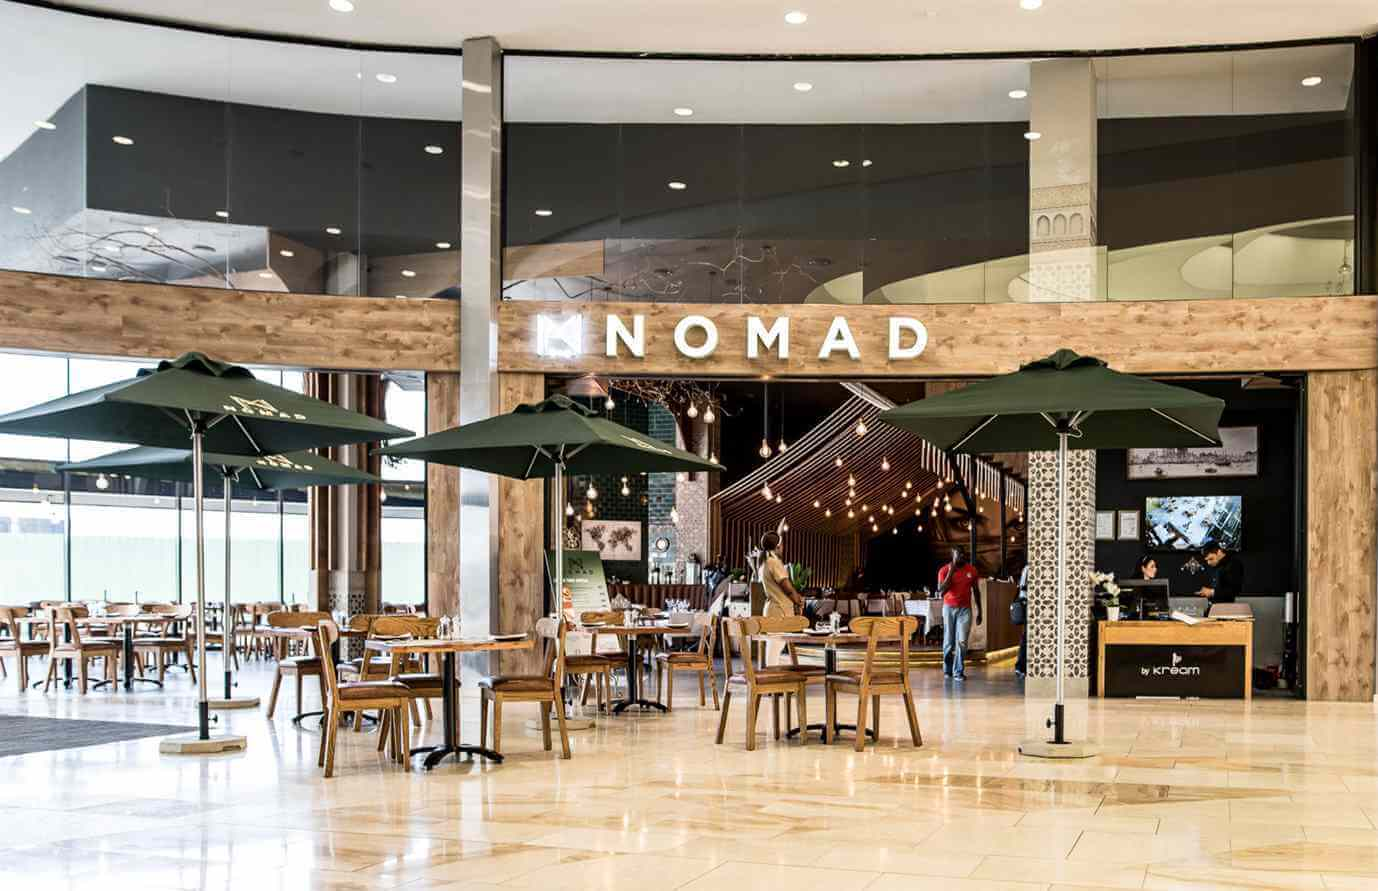 Mad Nomad Mall of Africa restaurants